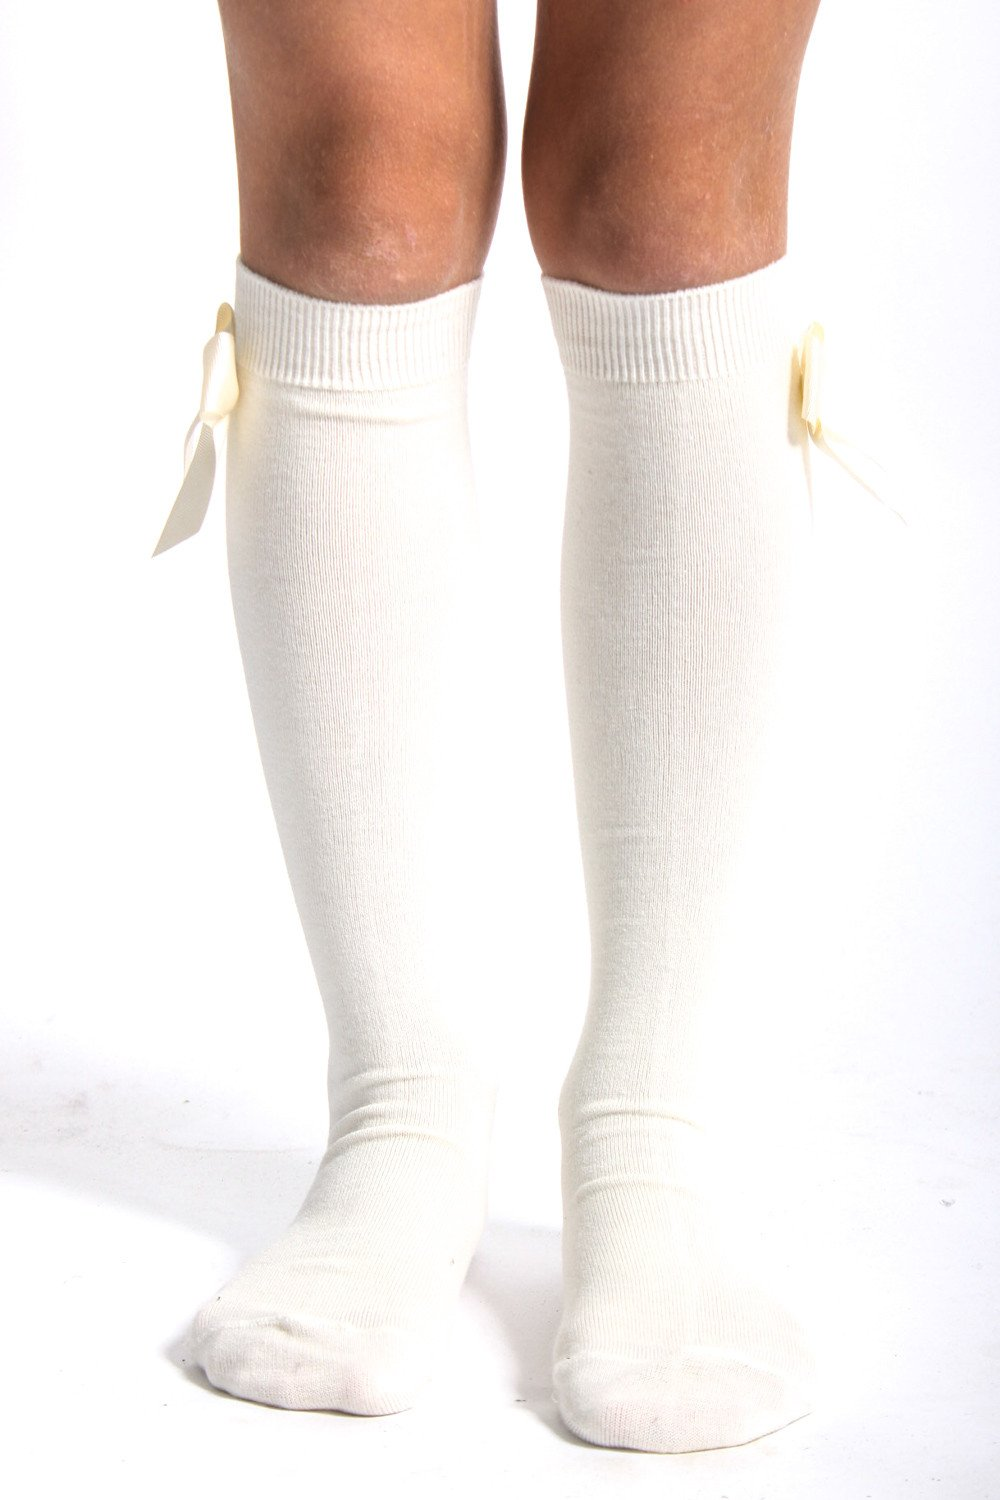 ALICE KATHLEEN CREAM KNEE SOCKS WITH BOW